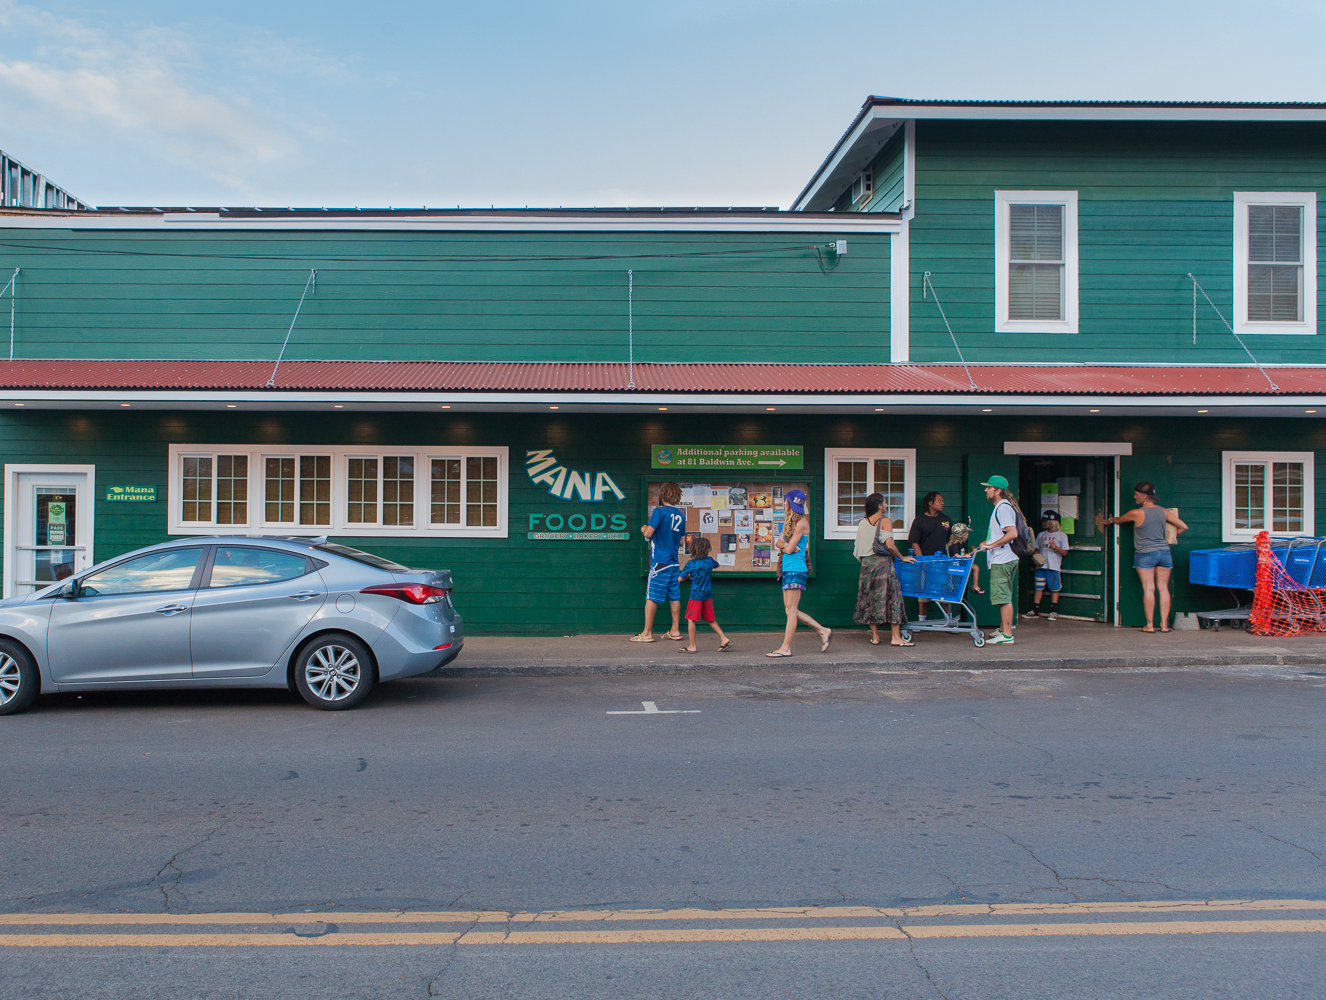 mana-foods-store-front-paia-maui